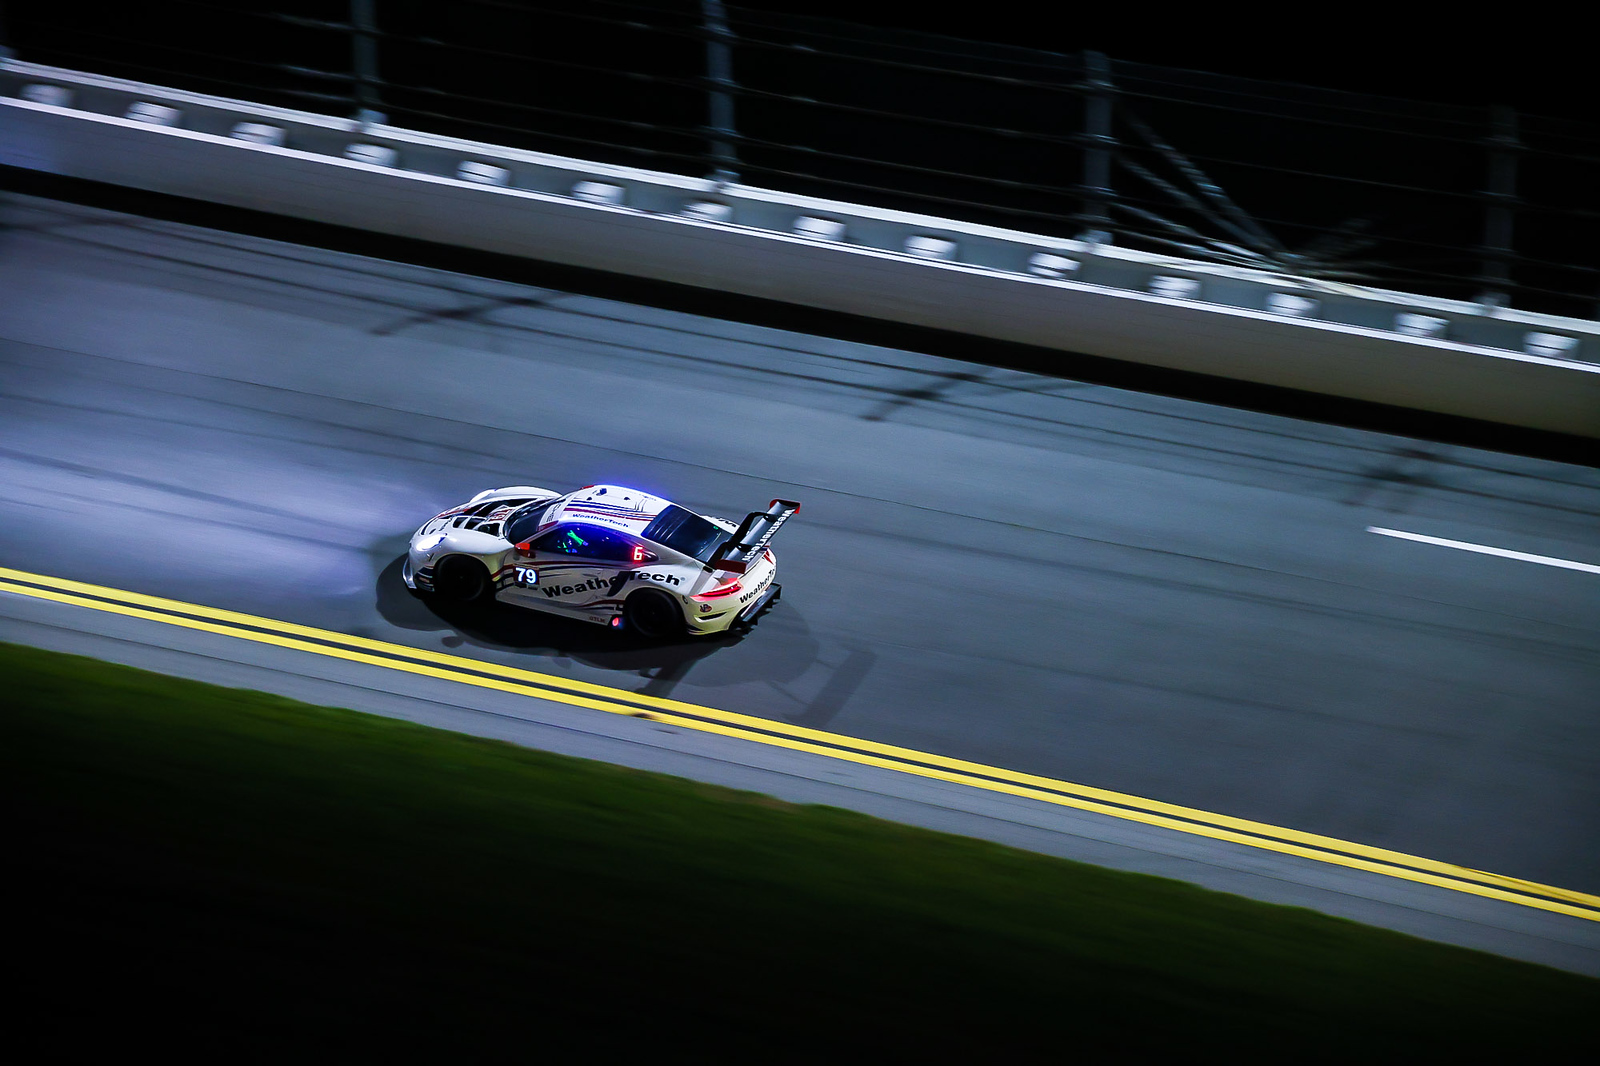 Porsche on the track at night_